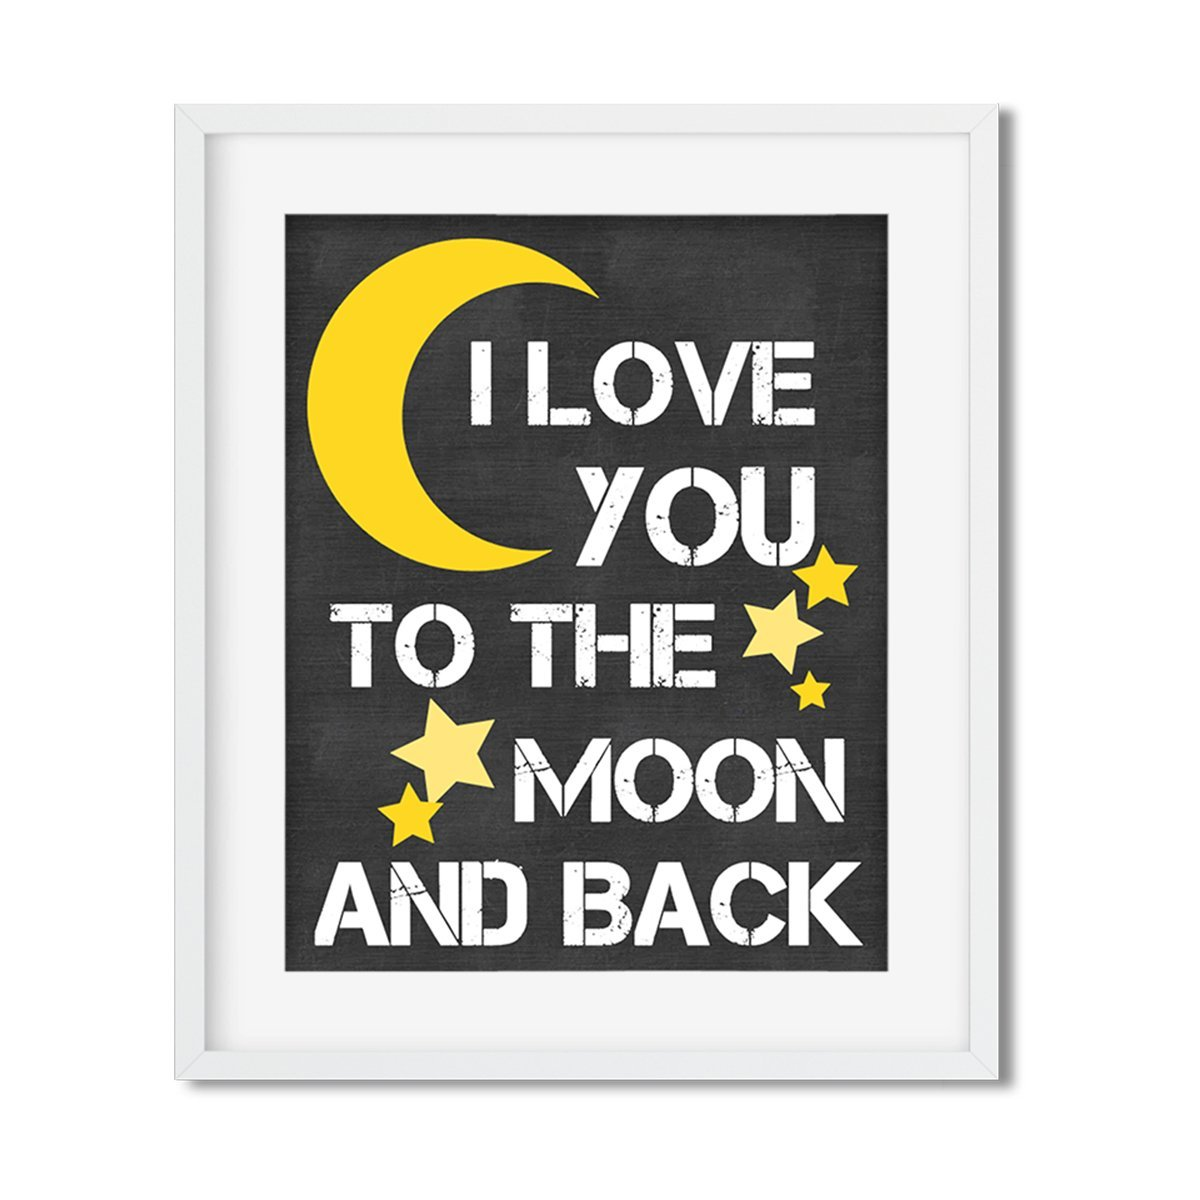 Love you to the moon and back - Art Print - Netties Expressions